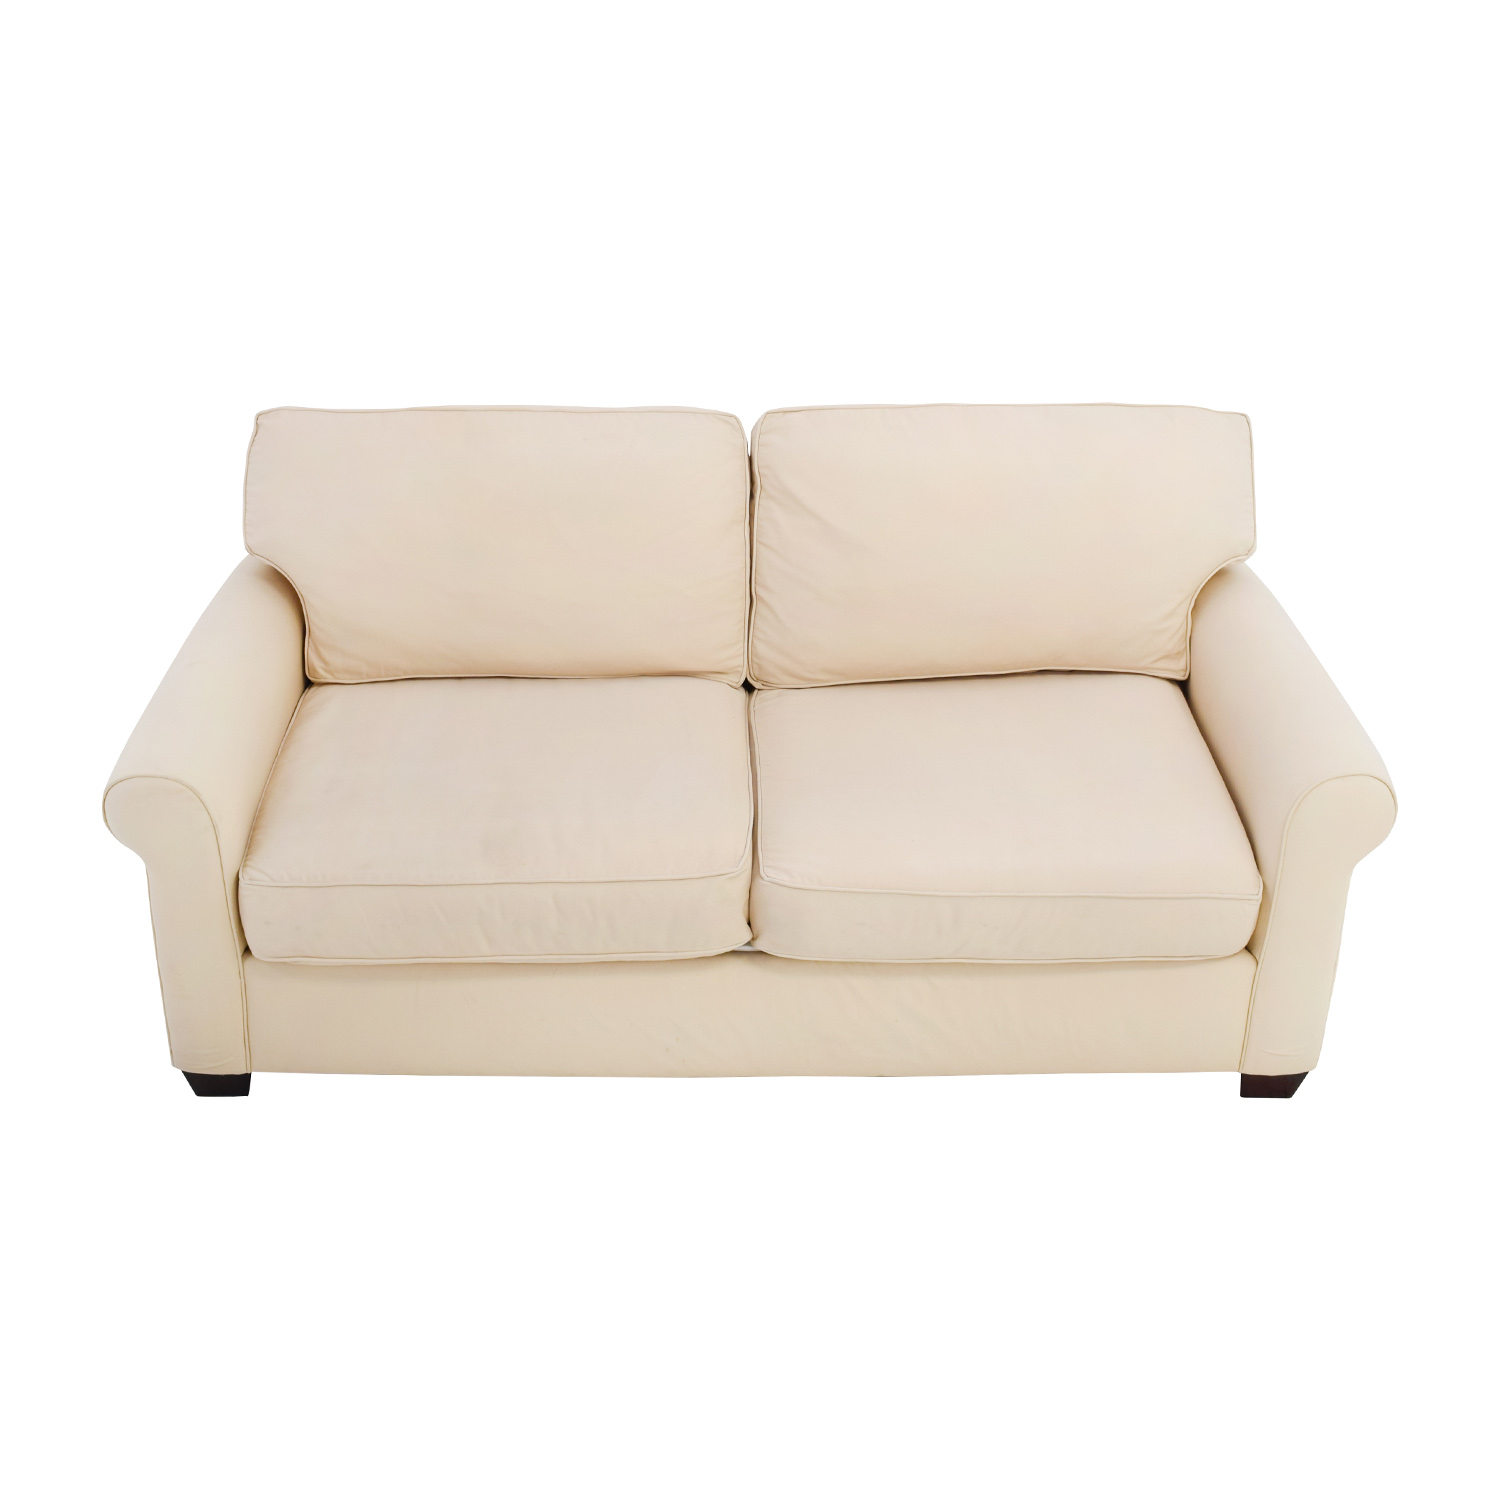 Charmant ... Pottery Barn Pottery Barn Buchanan Roll Arm Beige Sofa Second Hand ...